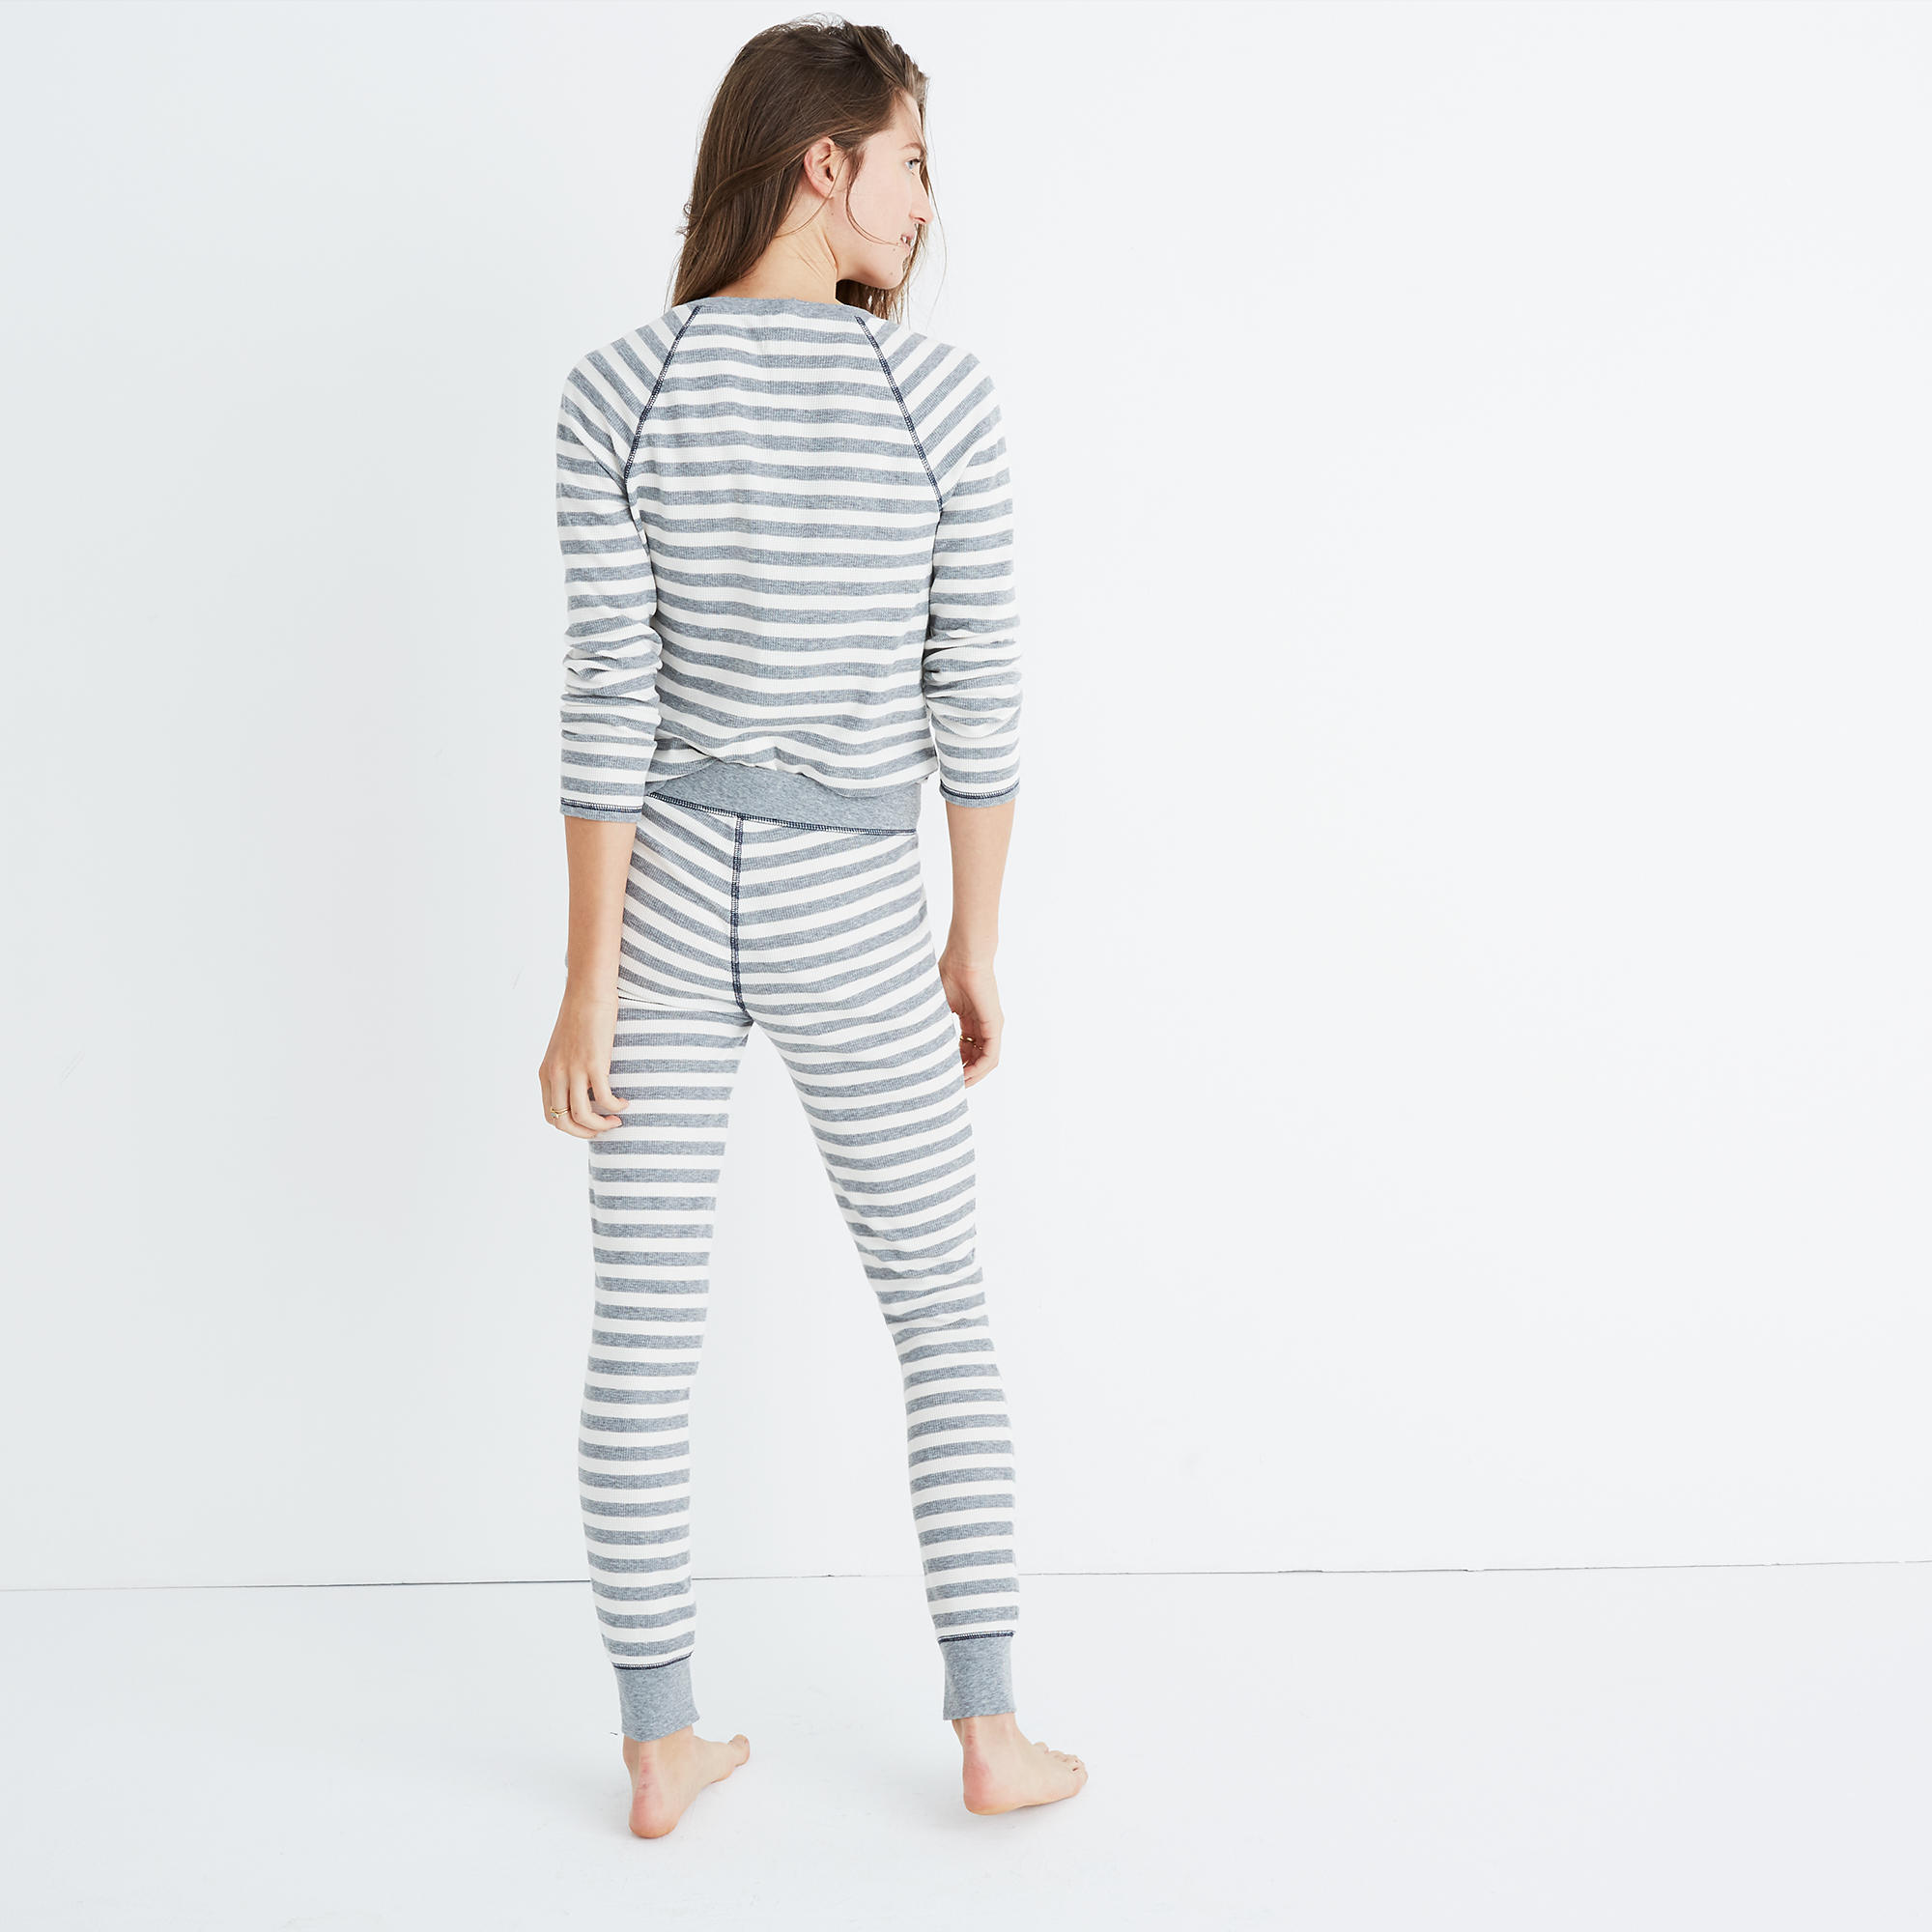 comfortable to pajama fall rock most hottest pieces inspired trend comforter shop if silk articles pajamas you want the